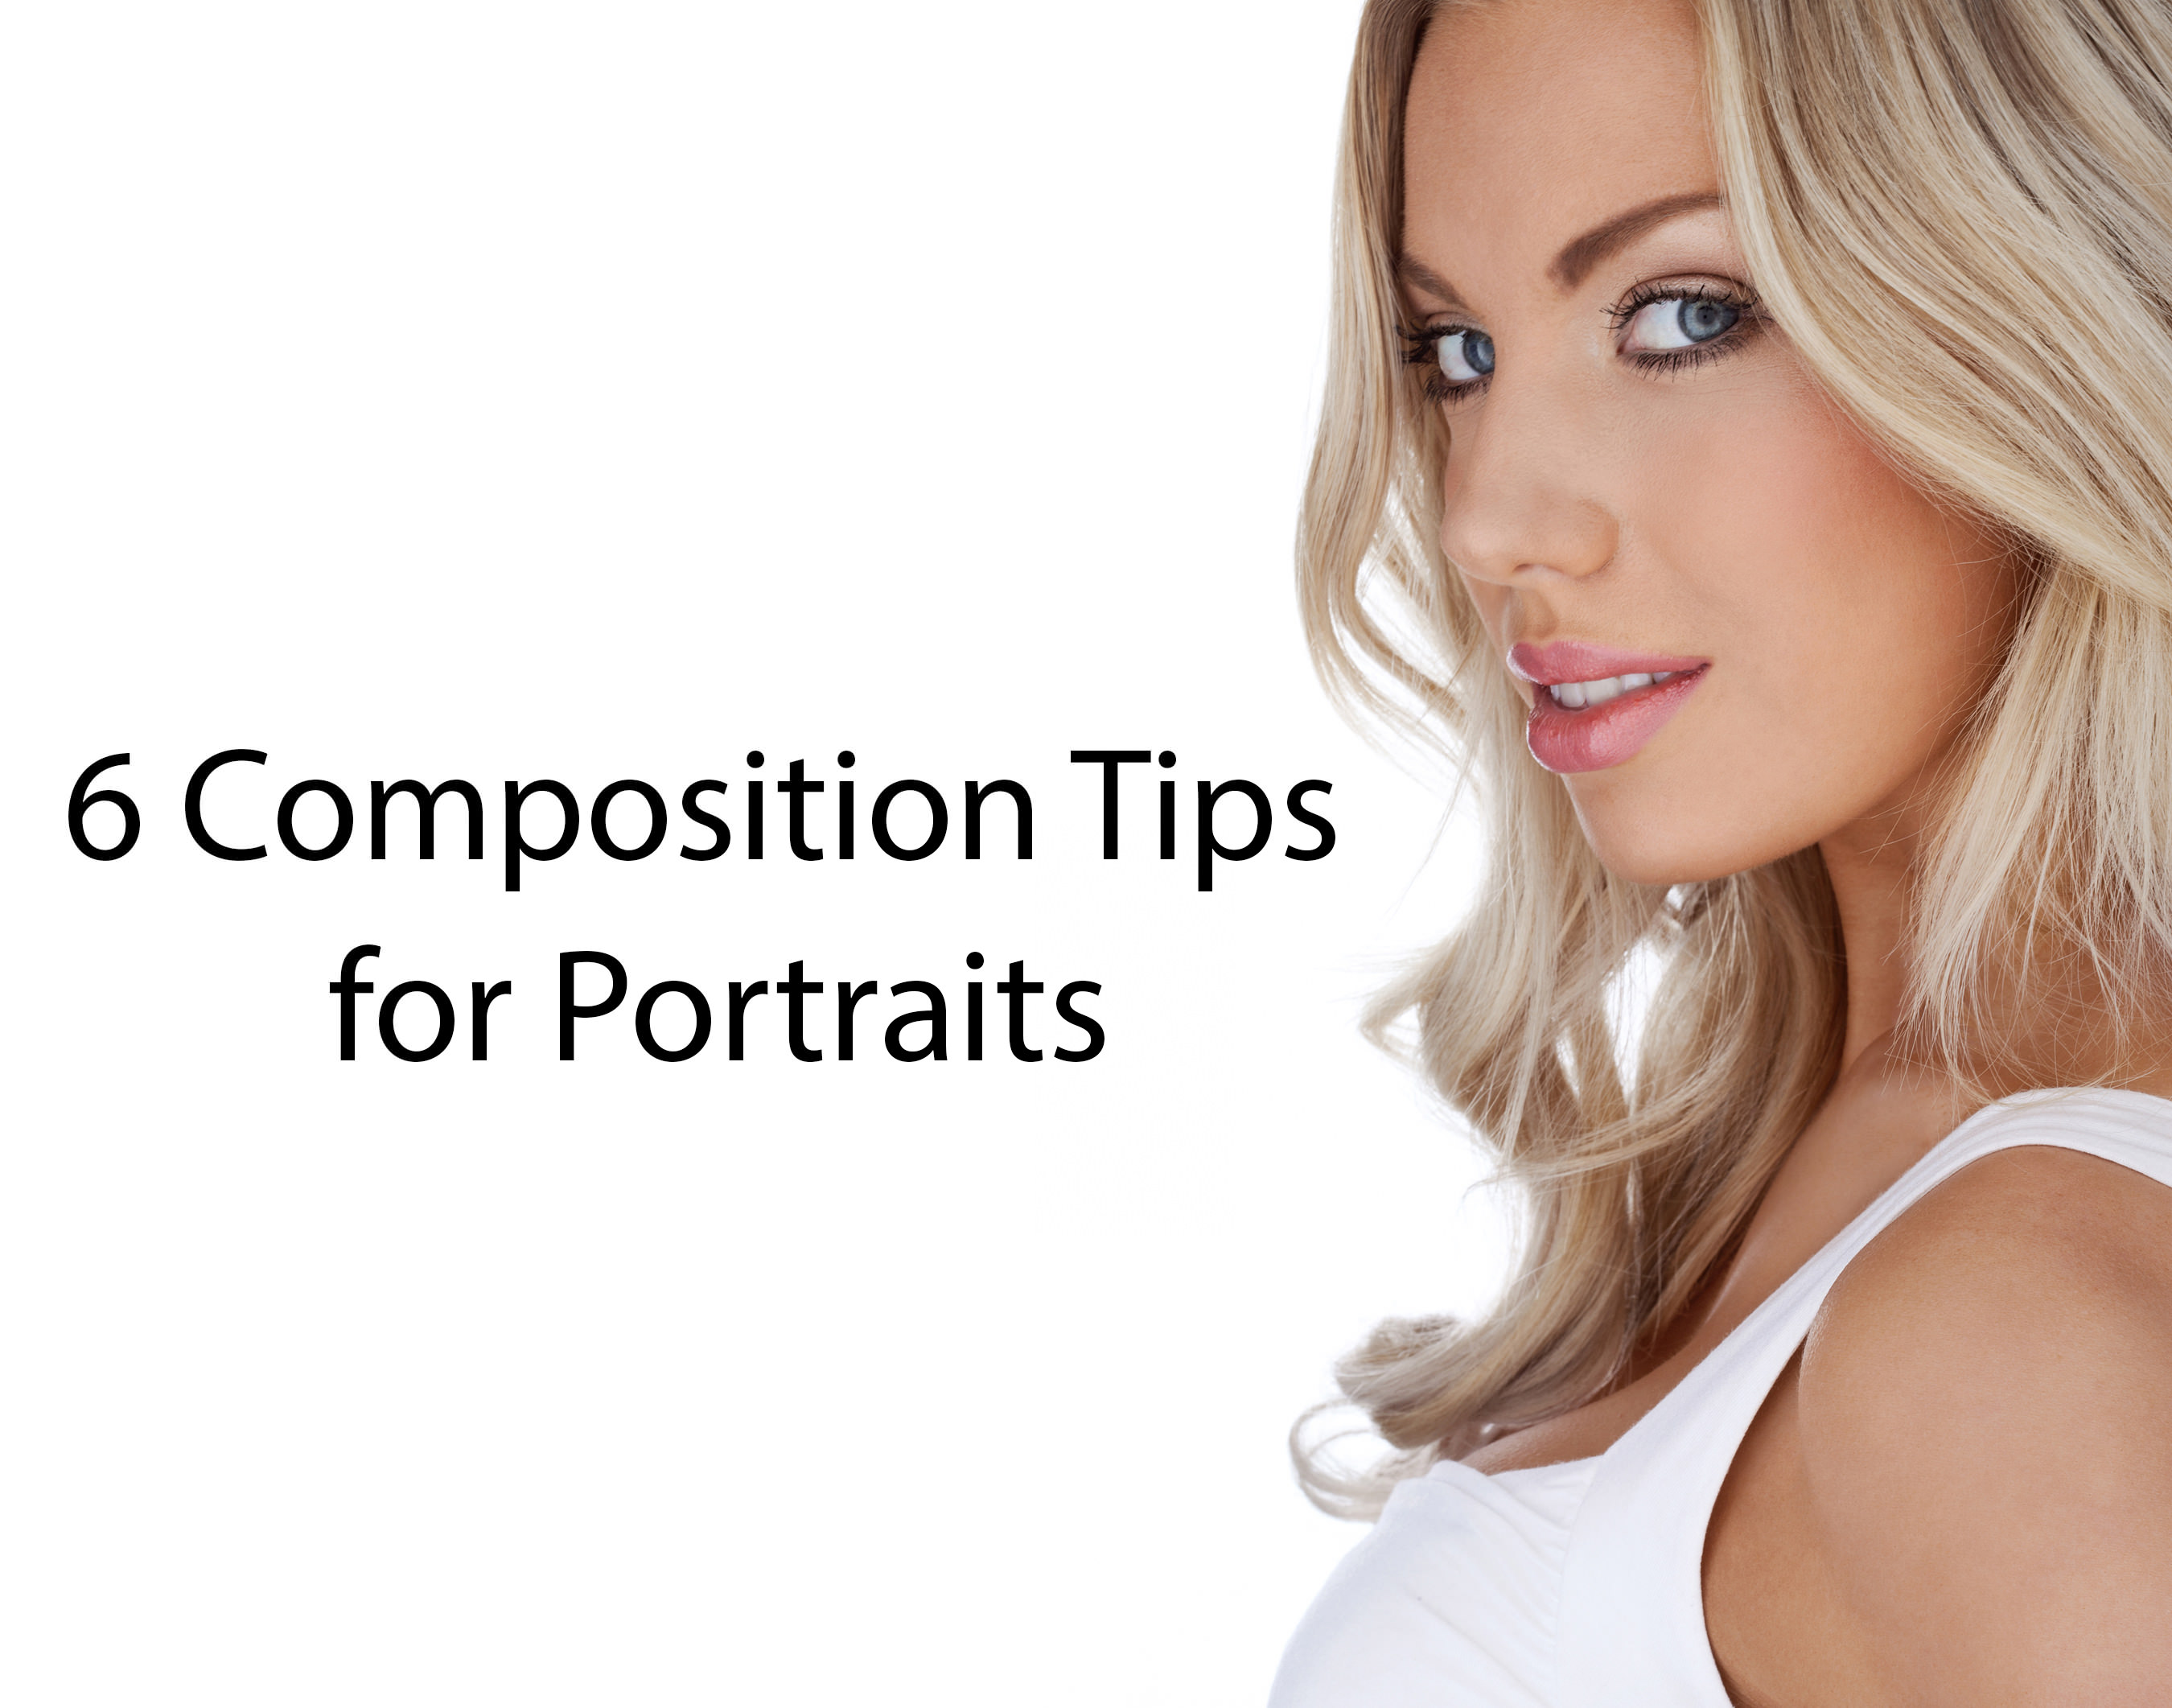 6 Composition Tips for Portraits